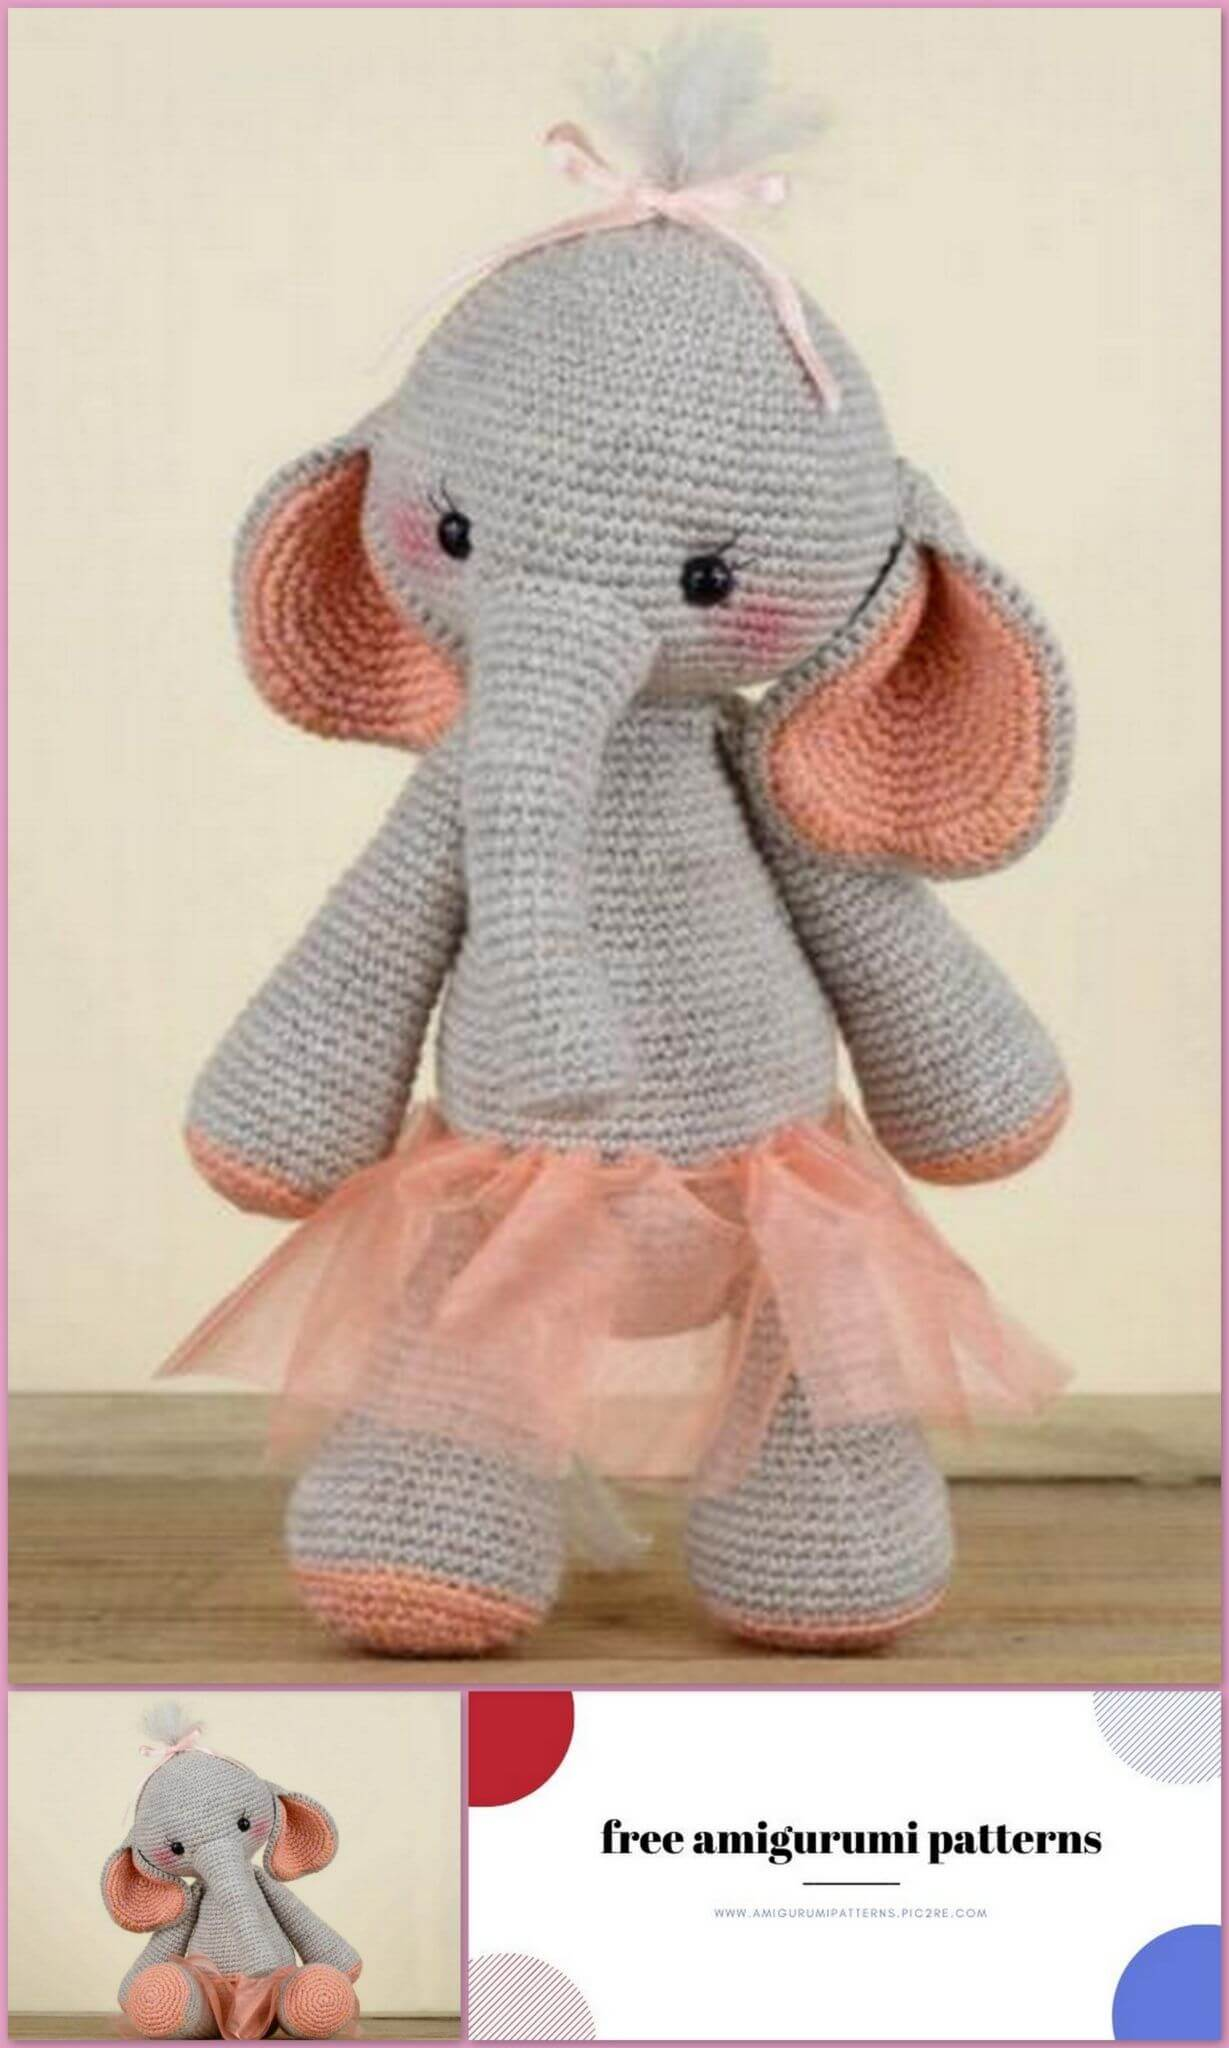 Crochet Elephant Amigurumi Easy Video Instructions | 2048x1229